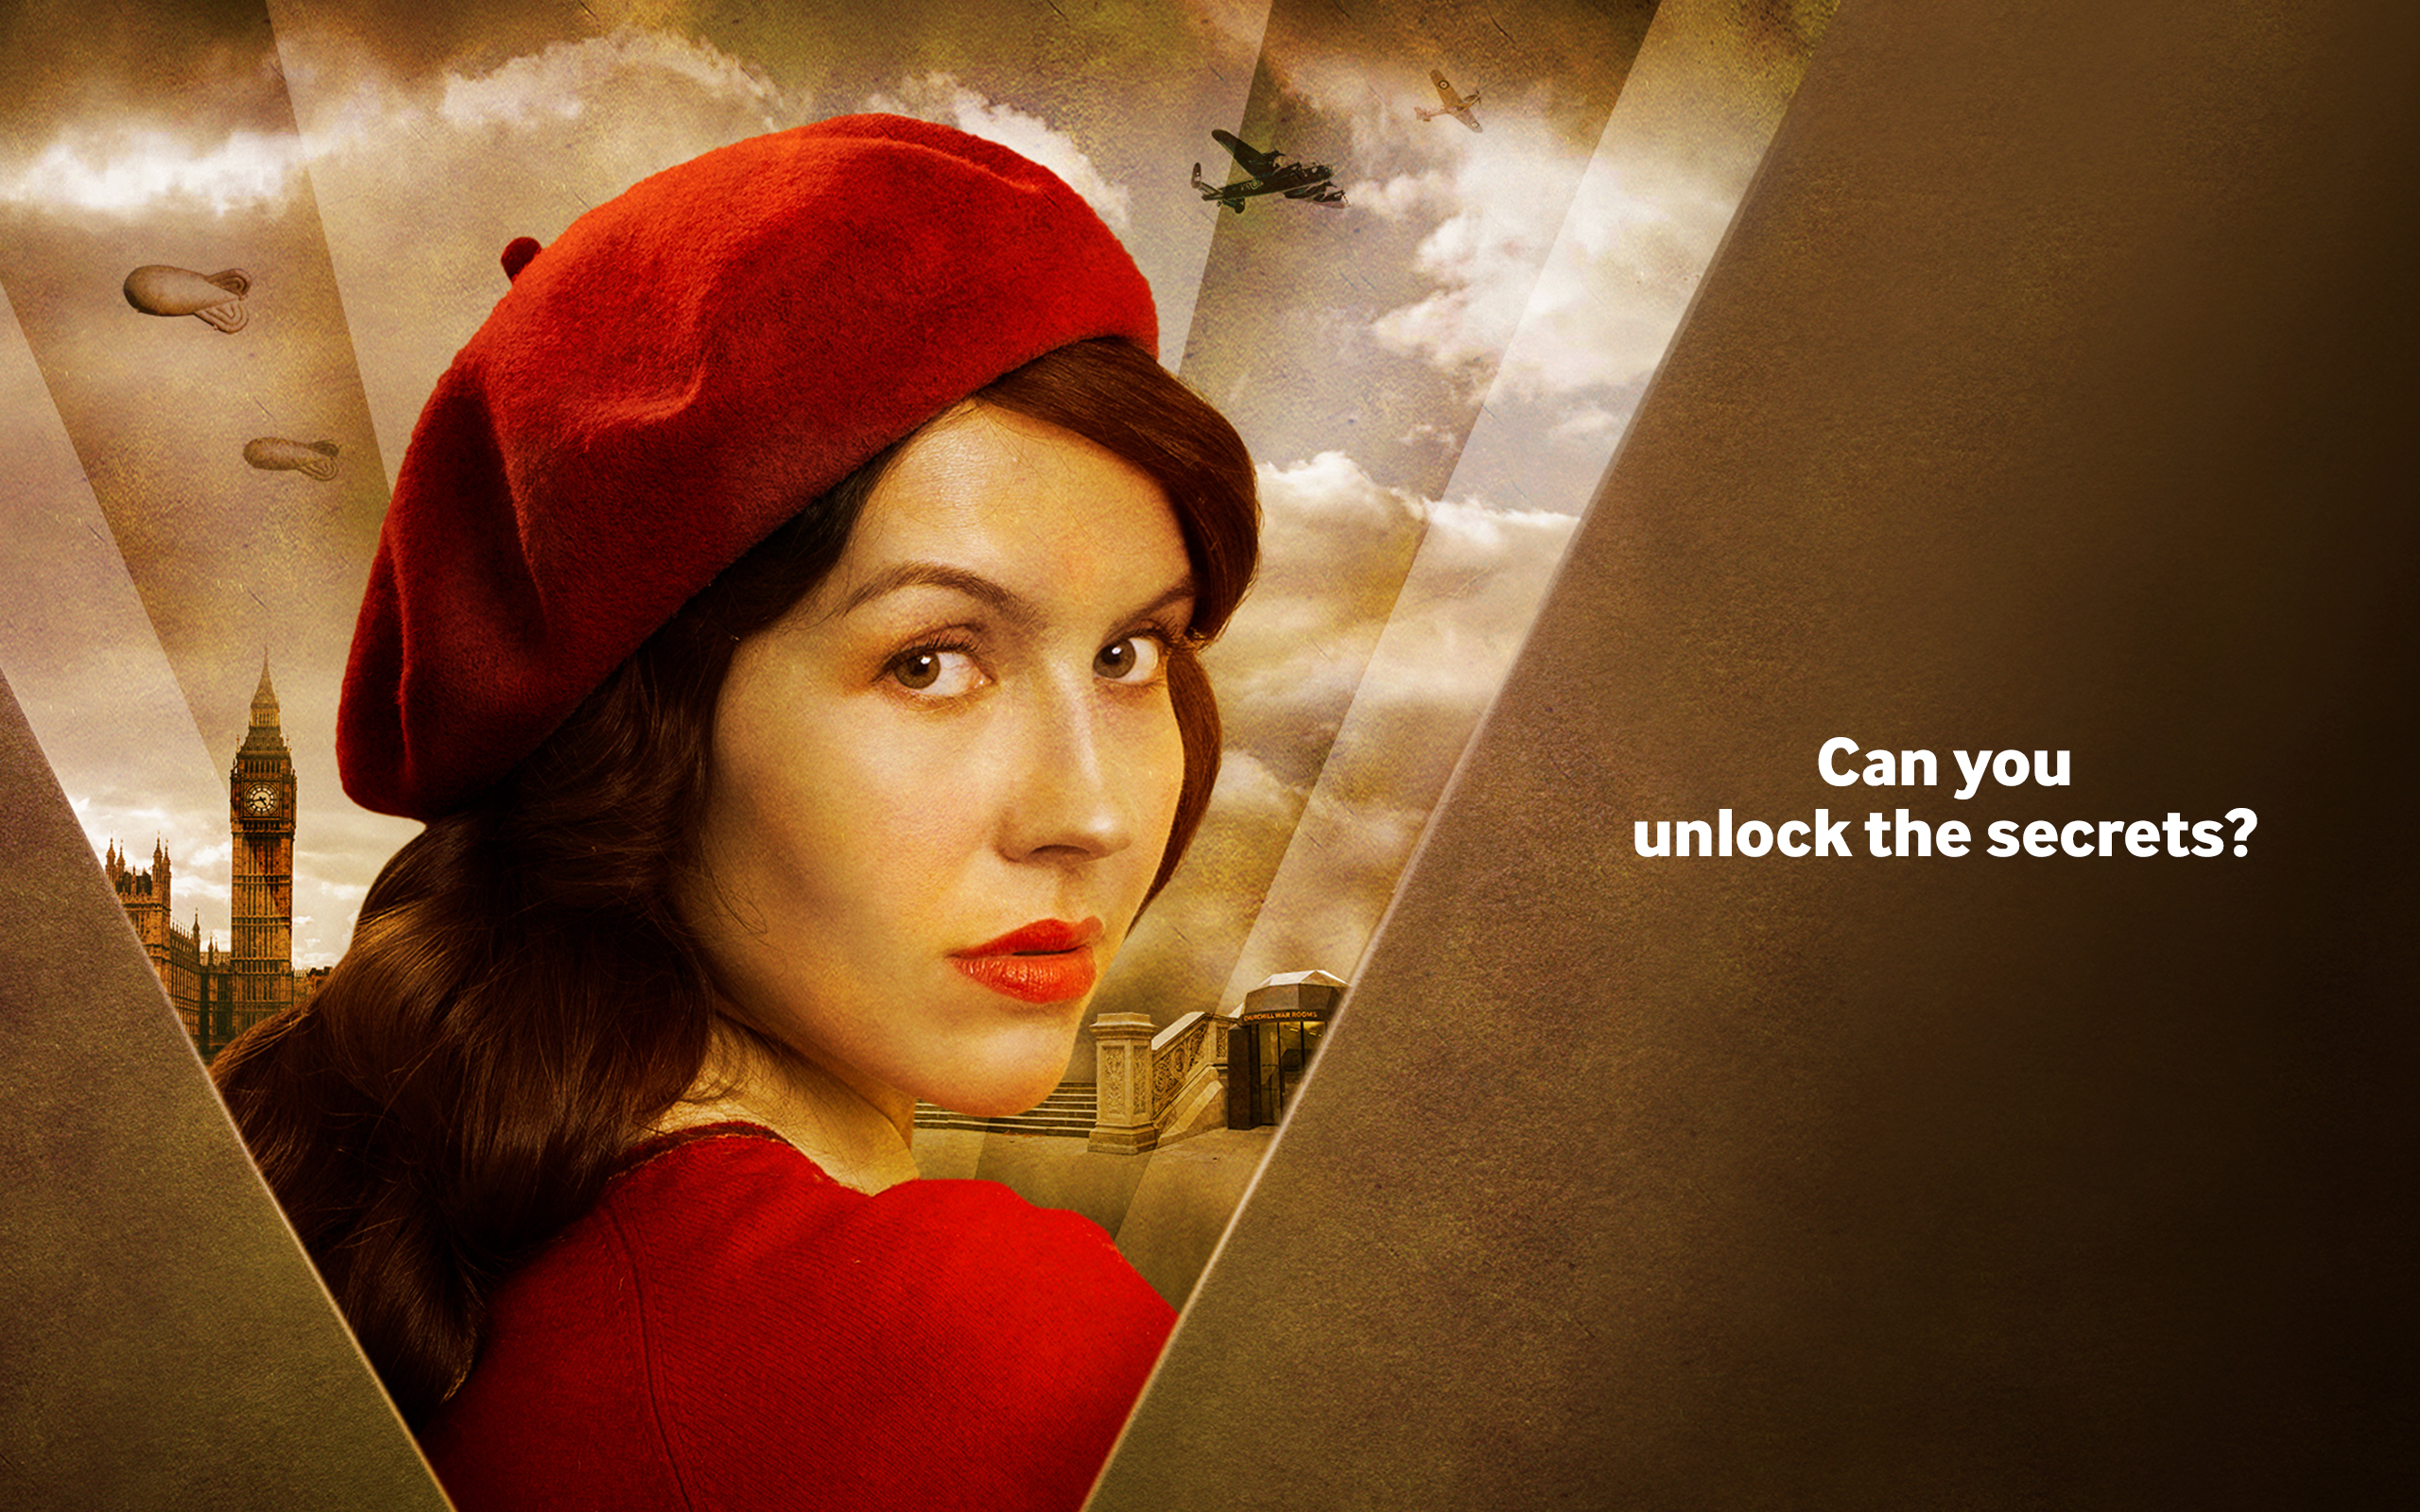 A woman in red looking over her shoulder in front of a sepia second world war collage background.